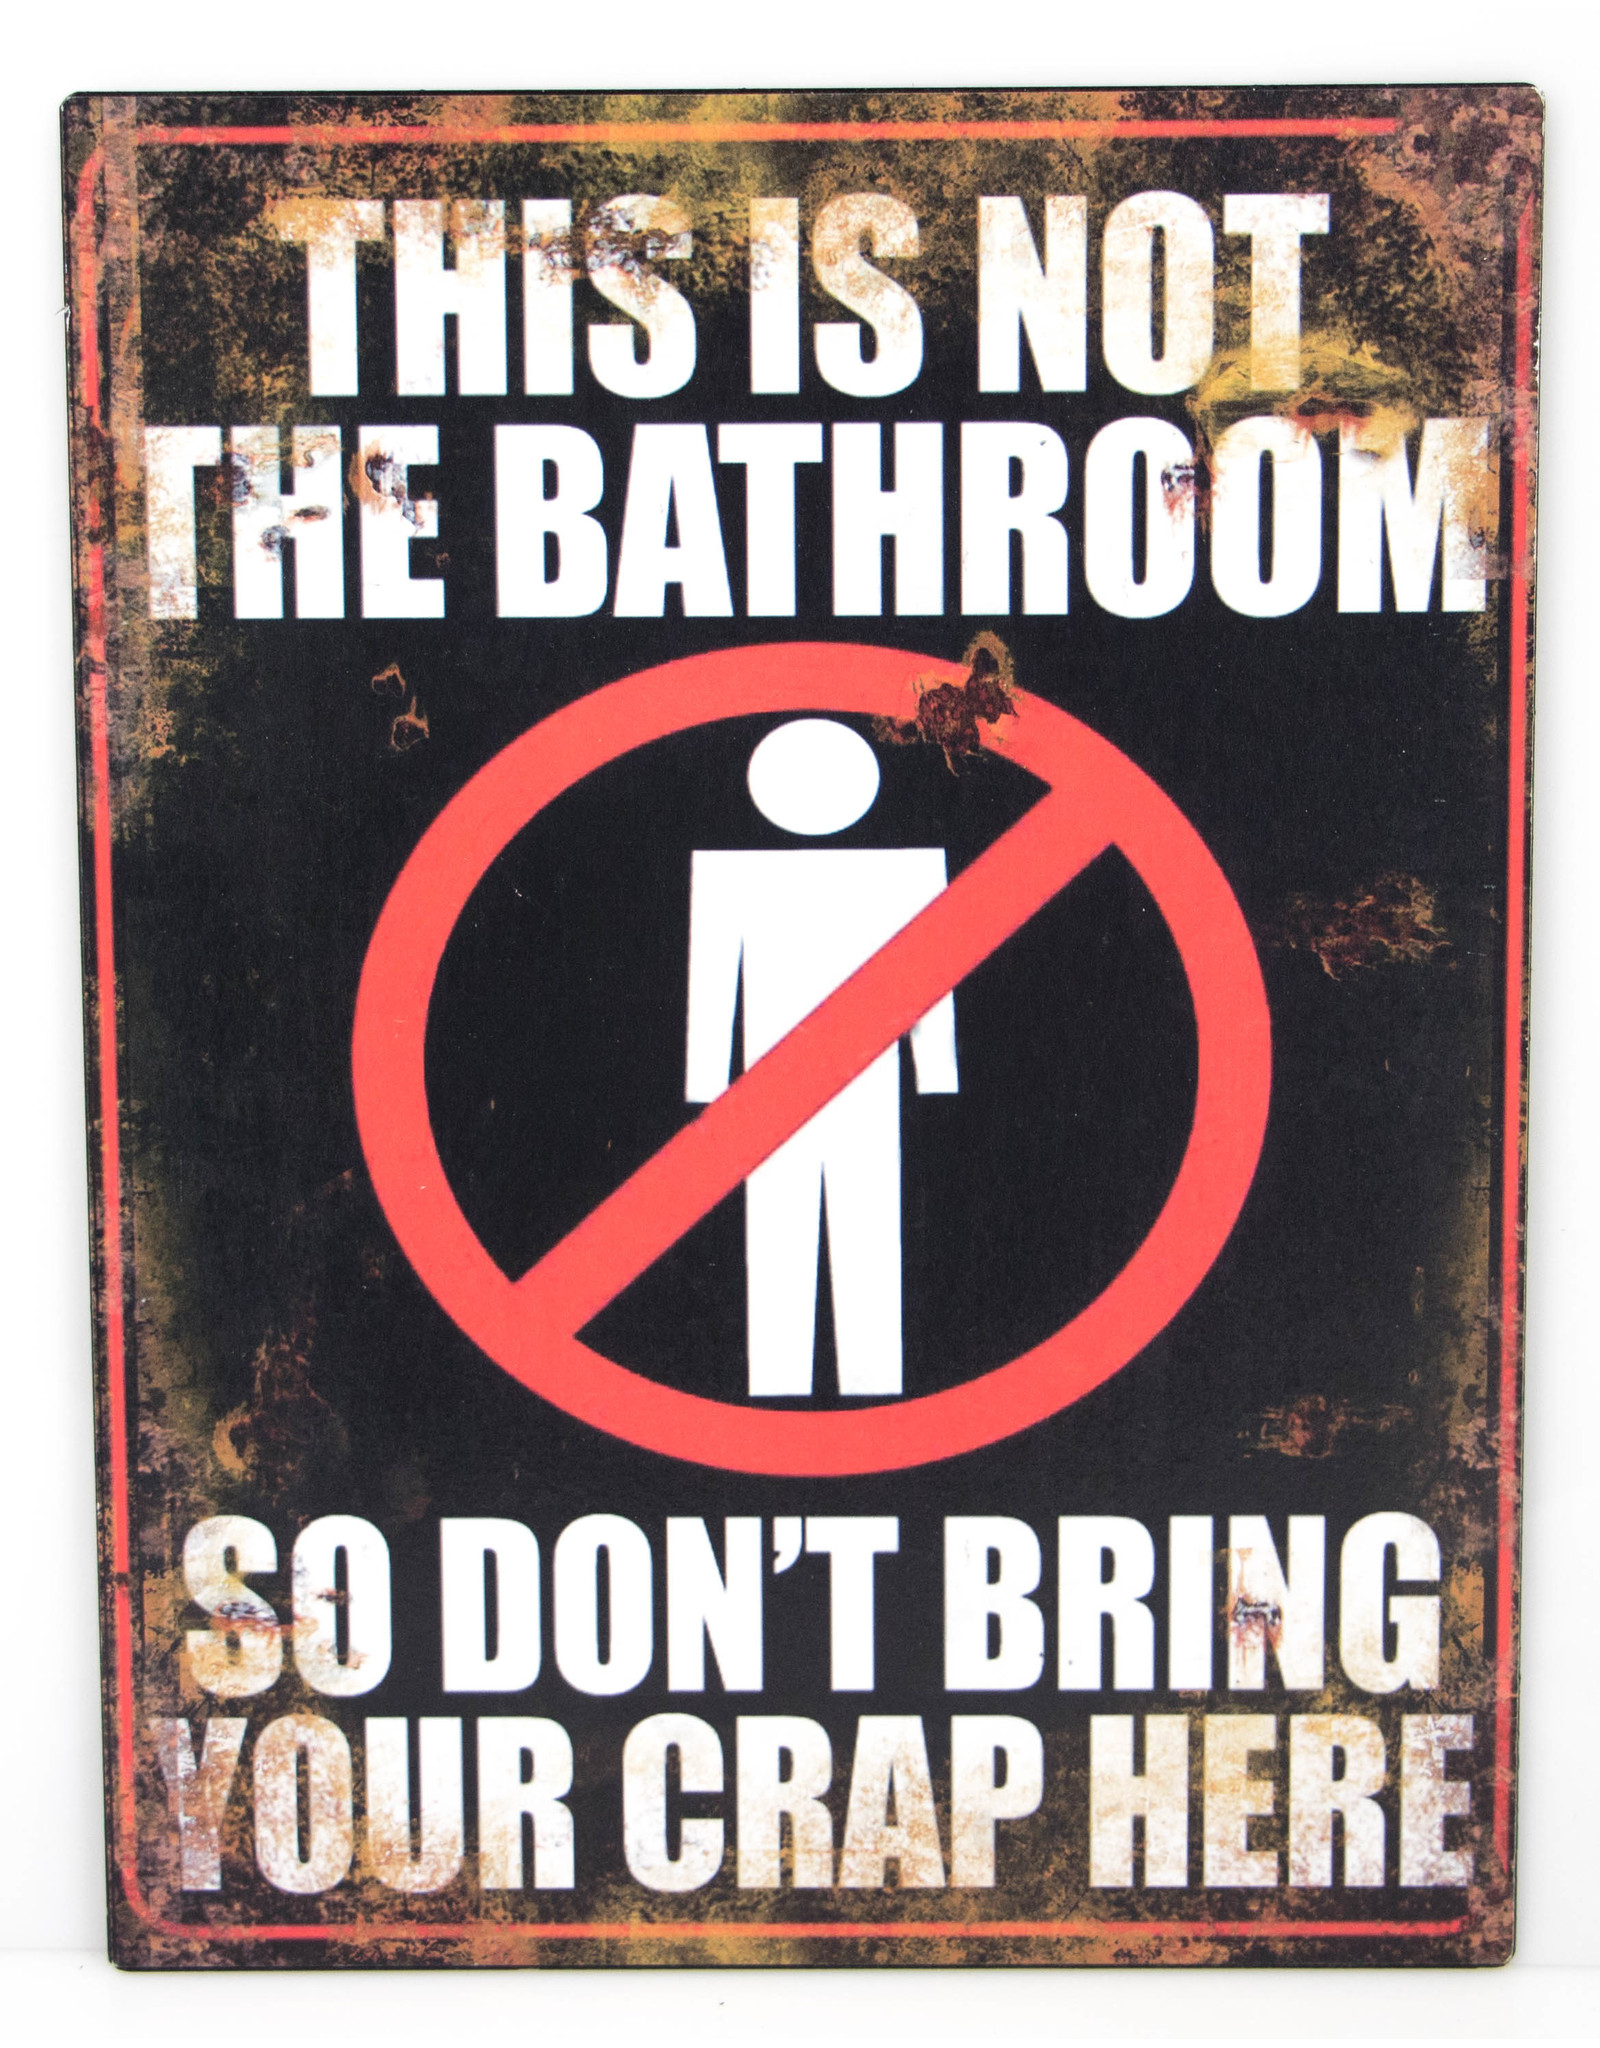 This is not the bathroom...